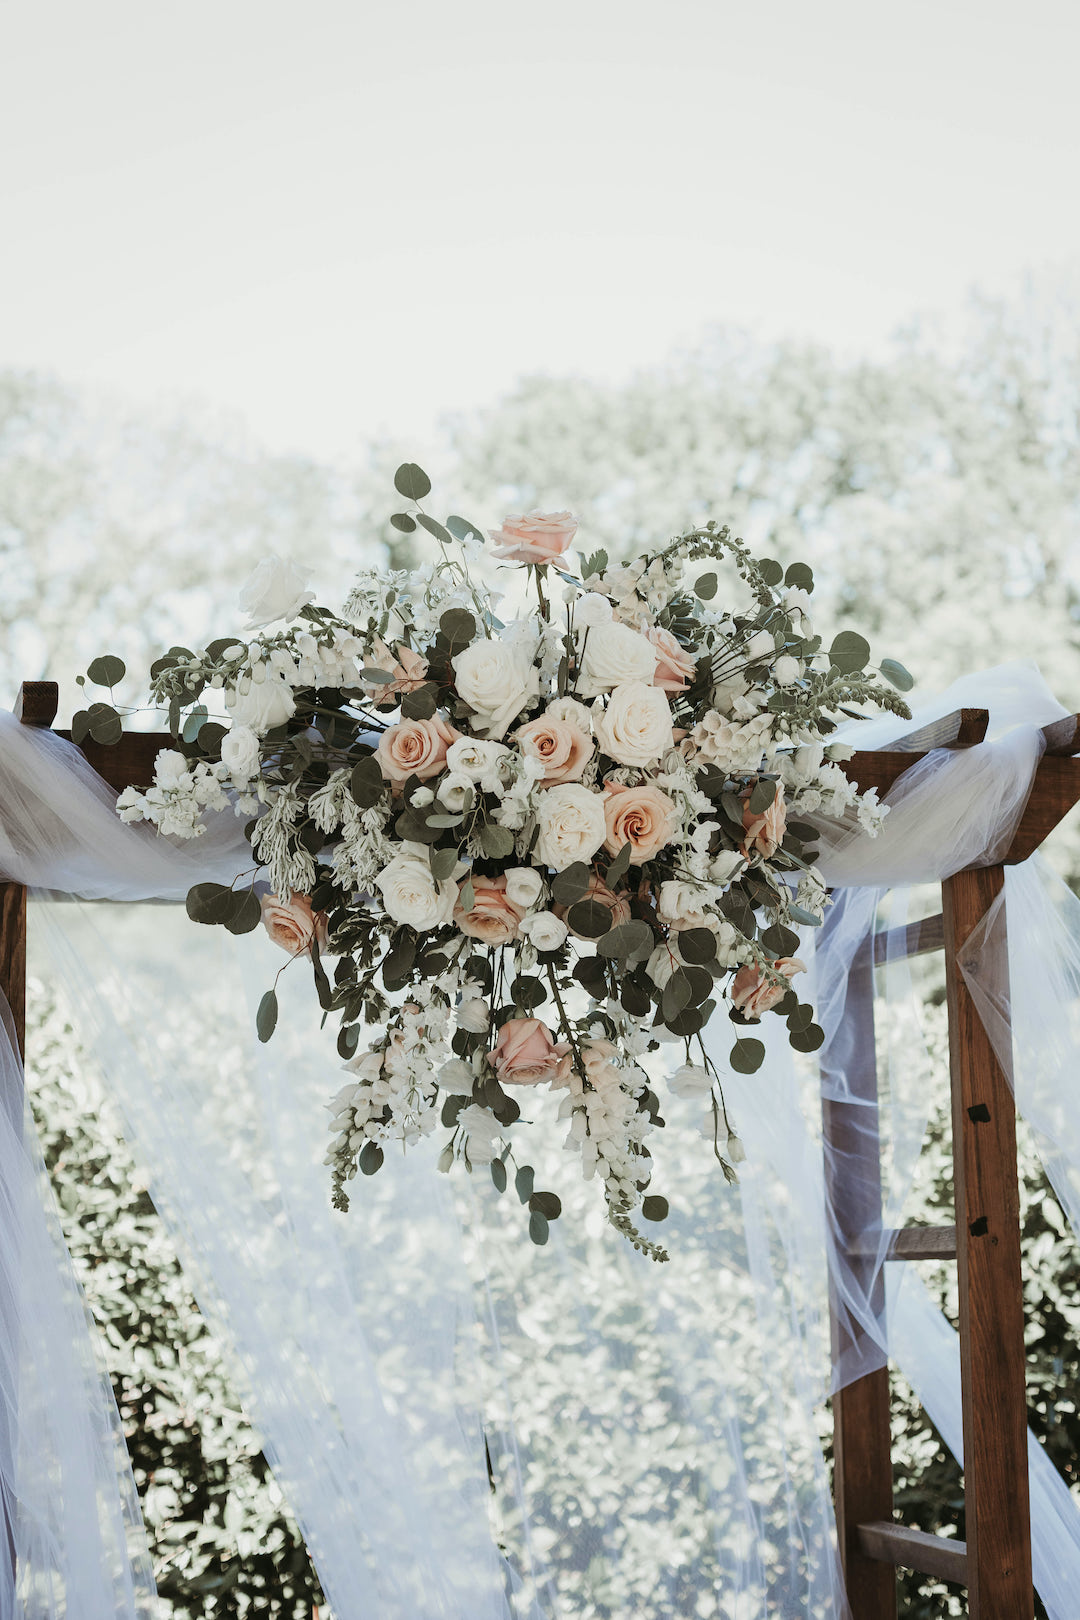 Wedding ceremony flowers: Romantic Country Club Soiree by Juniper Weddings featured on Nashville Bride Guide